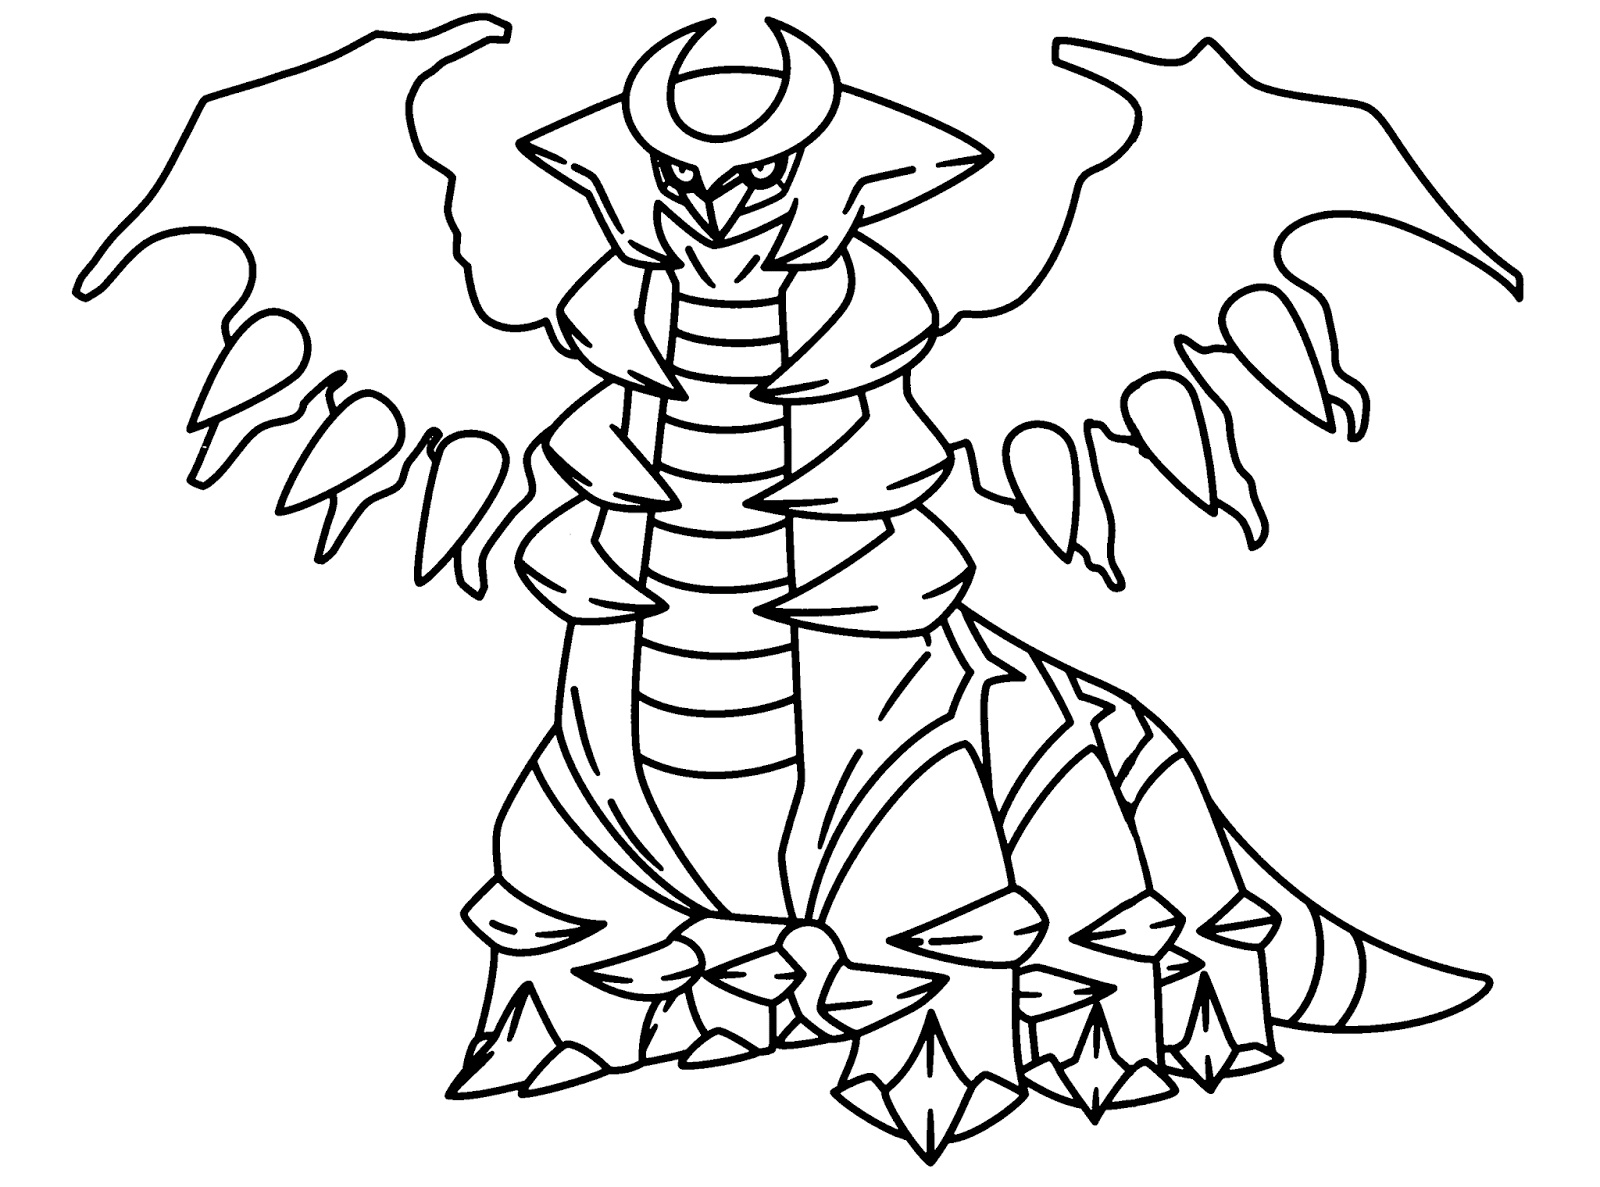 coloring pictures of pokemon legendary pokemon coloring pages free k5 worksheets coloring pokemon pictures of